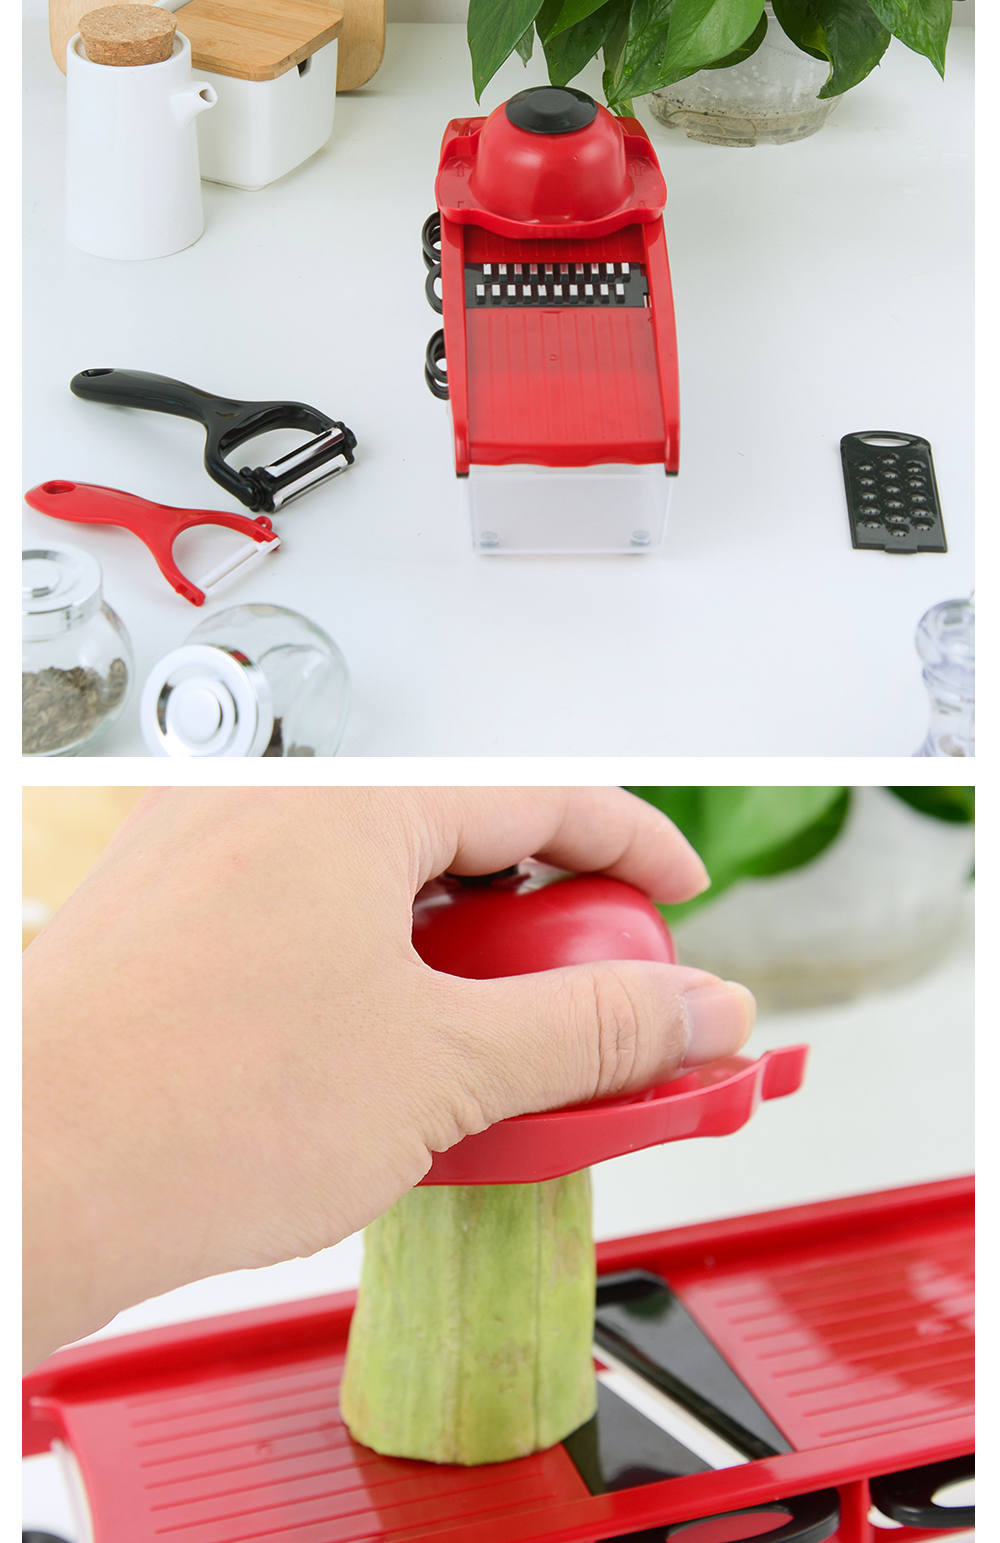 XYJ Vegetable Cutter Mandoline Slicer Potato Peeler Carrot Cheese Grater Vegetable Slicer Kitchen Accessories Gift 2 Peelers